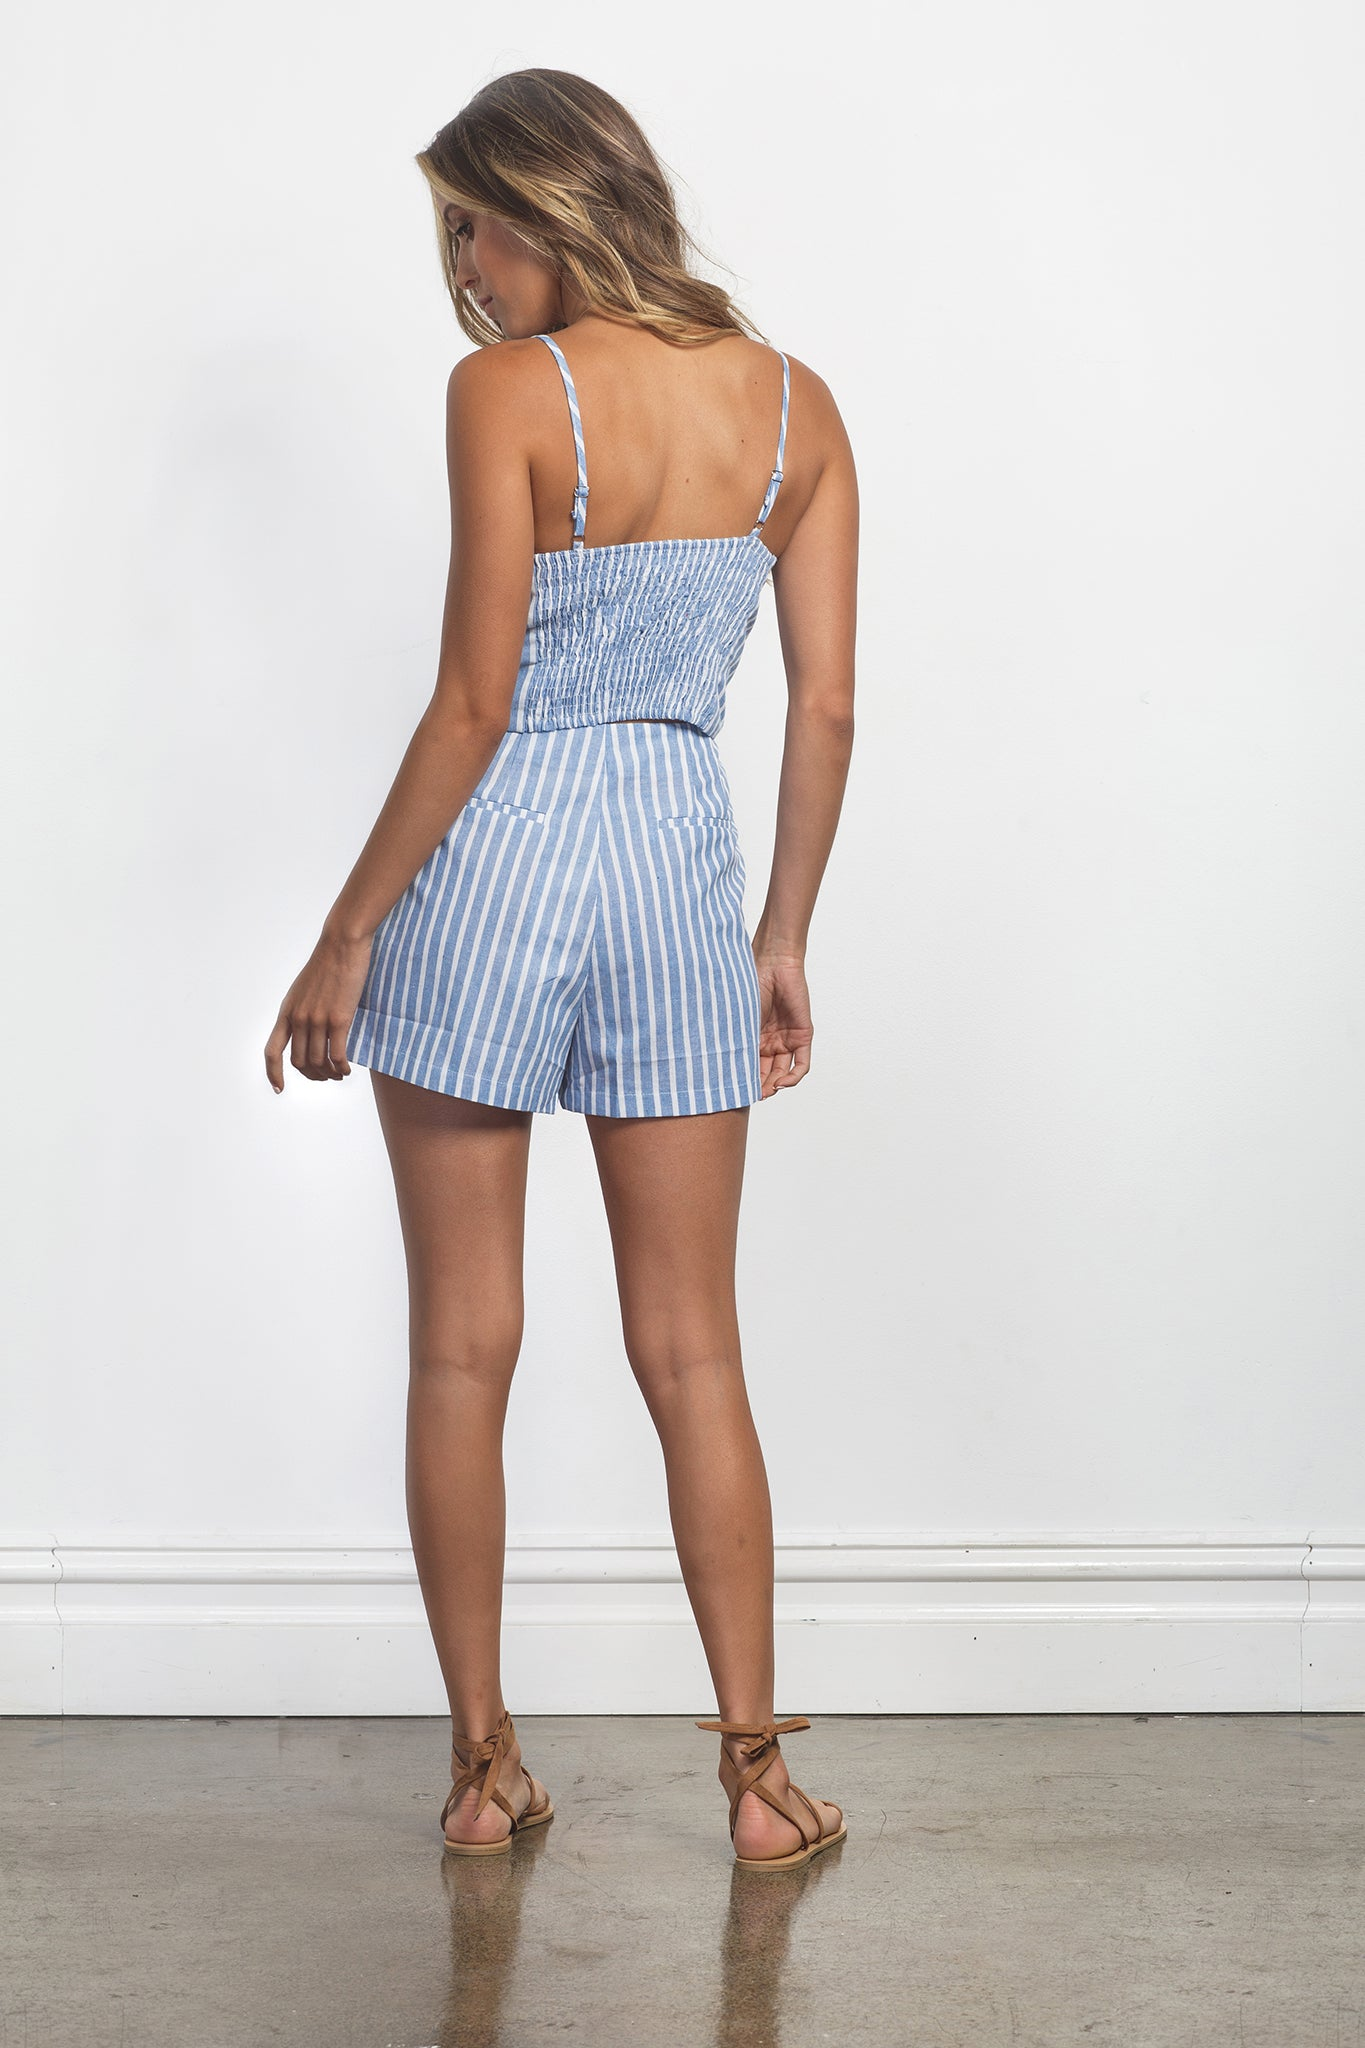 ZARA SHORTS - BLUE